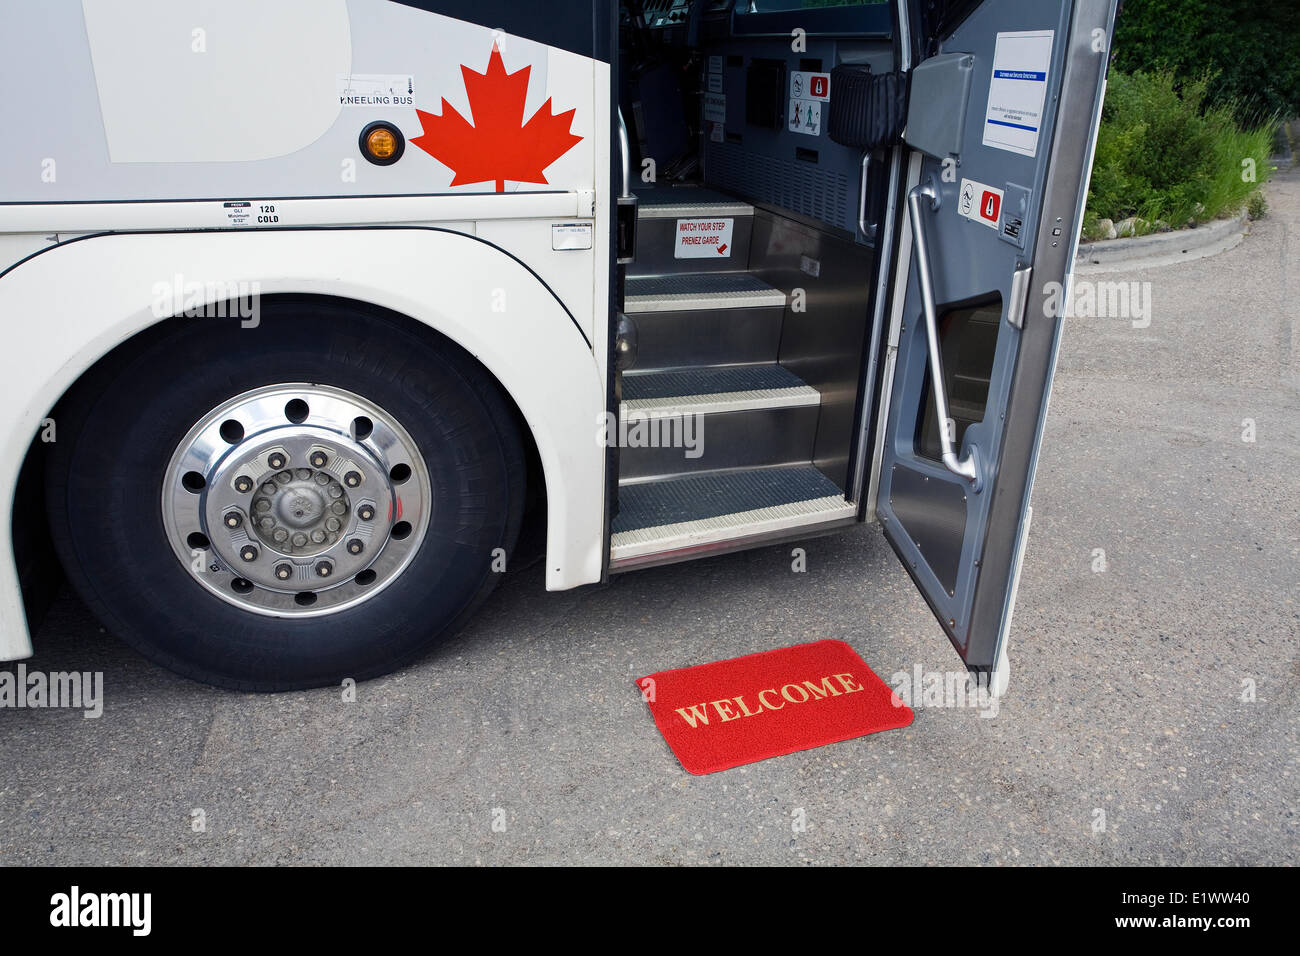 Floor mats canadian tire - Greyhound Bus With Open Door And Welcome Mat Canada Stock Image